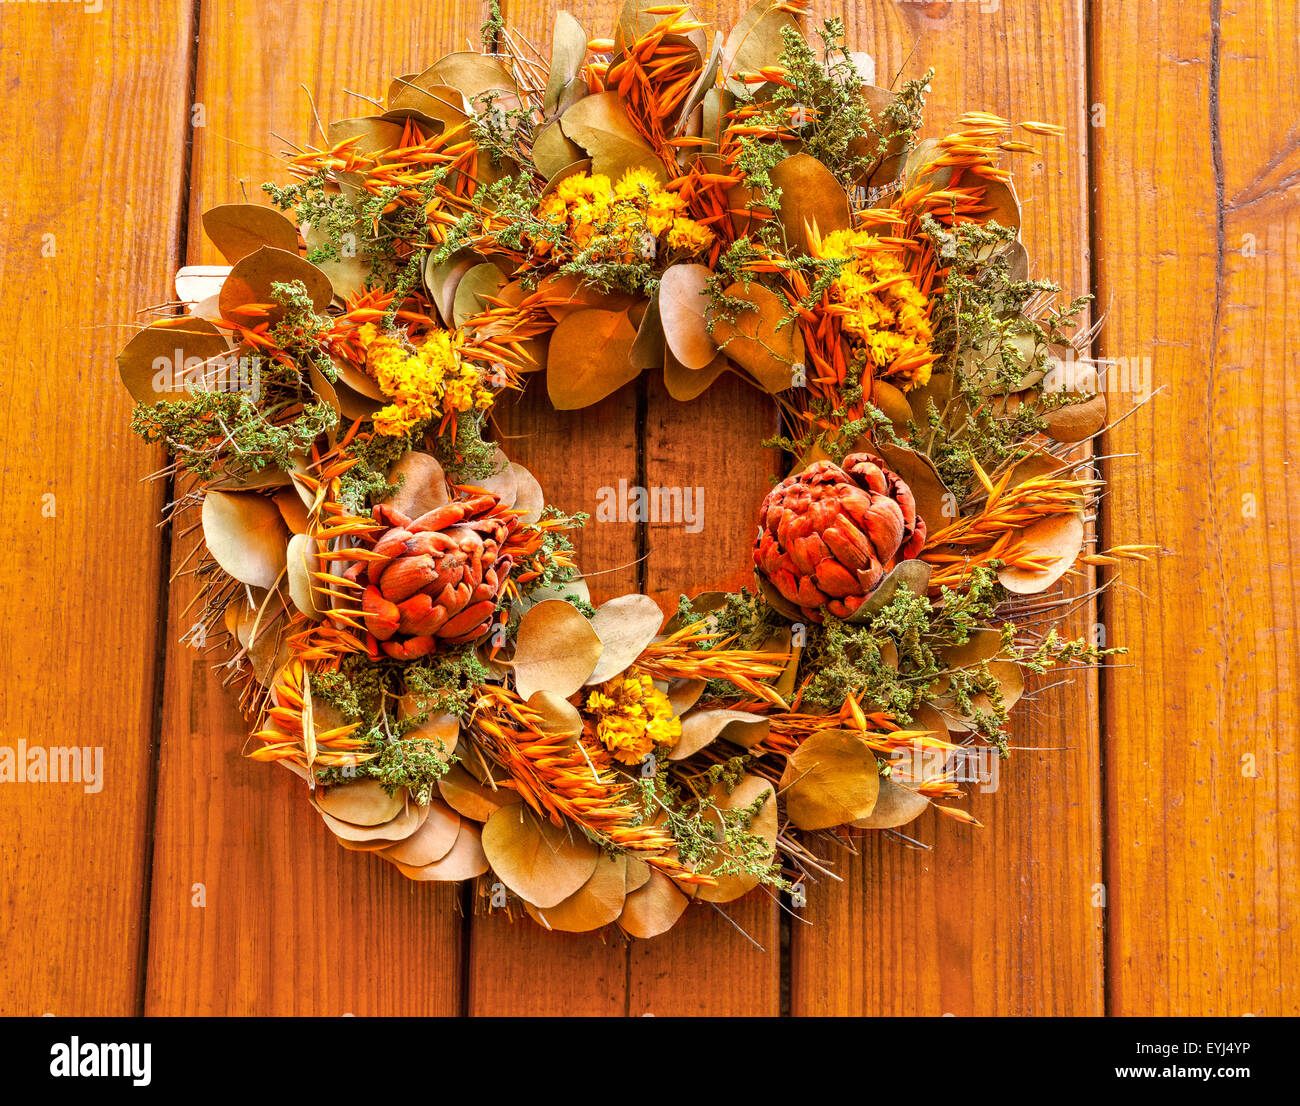 Autumn wreath with dried flowers against a wooden background Stock Photo